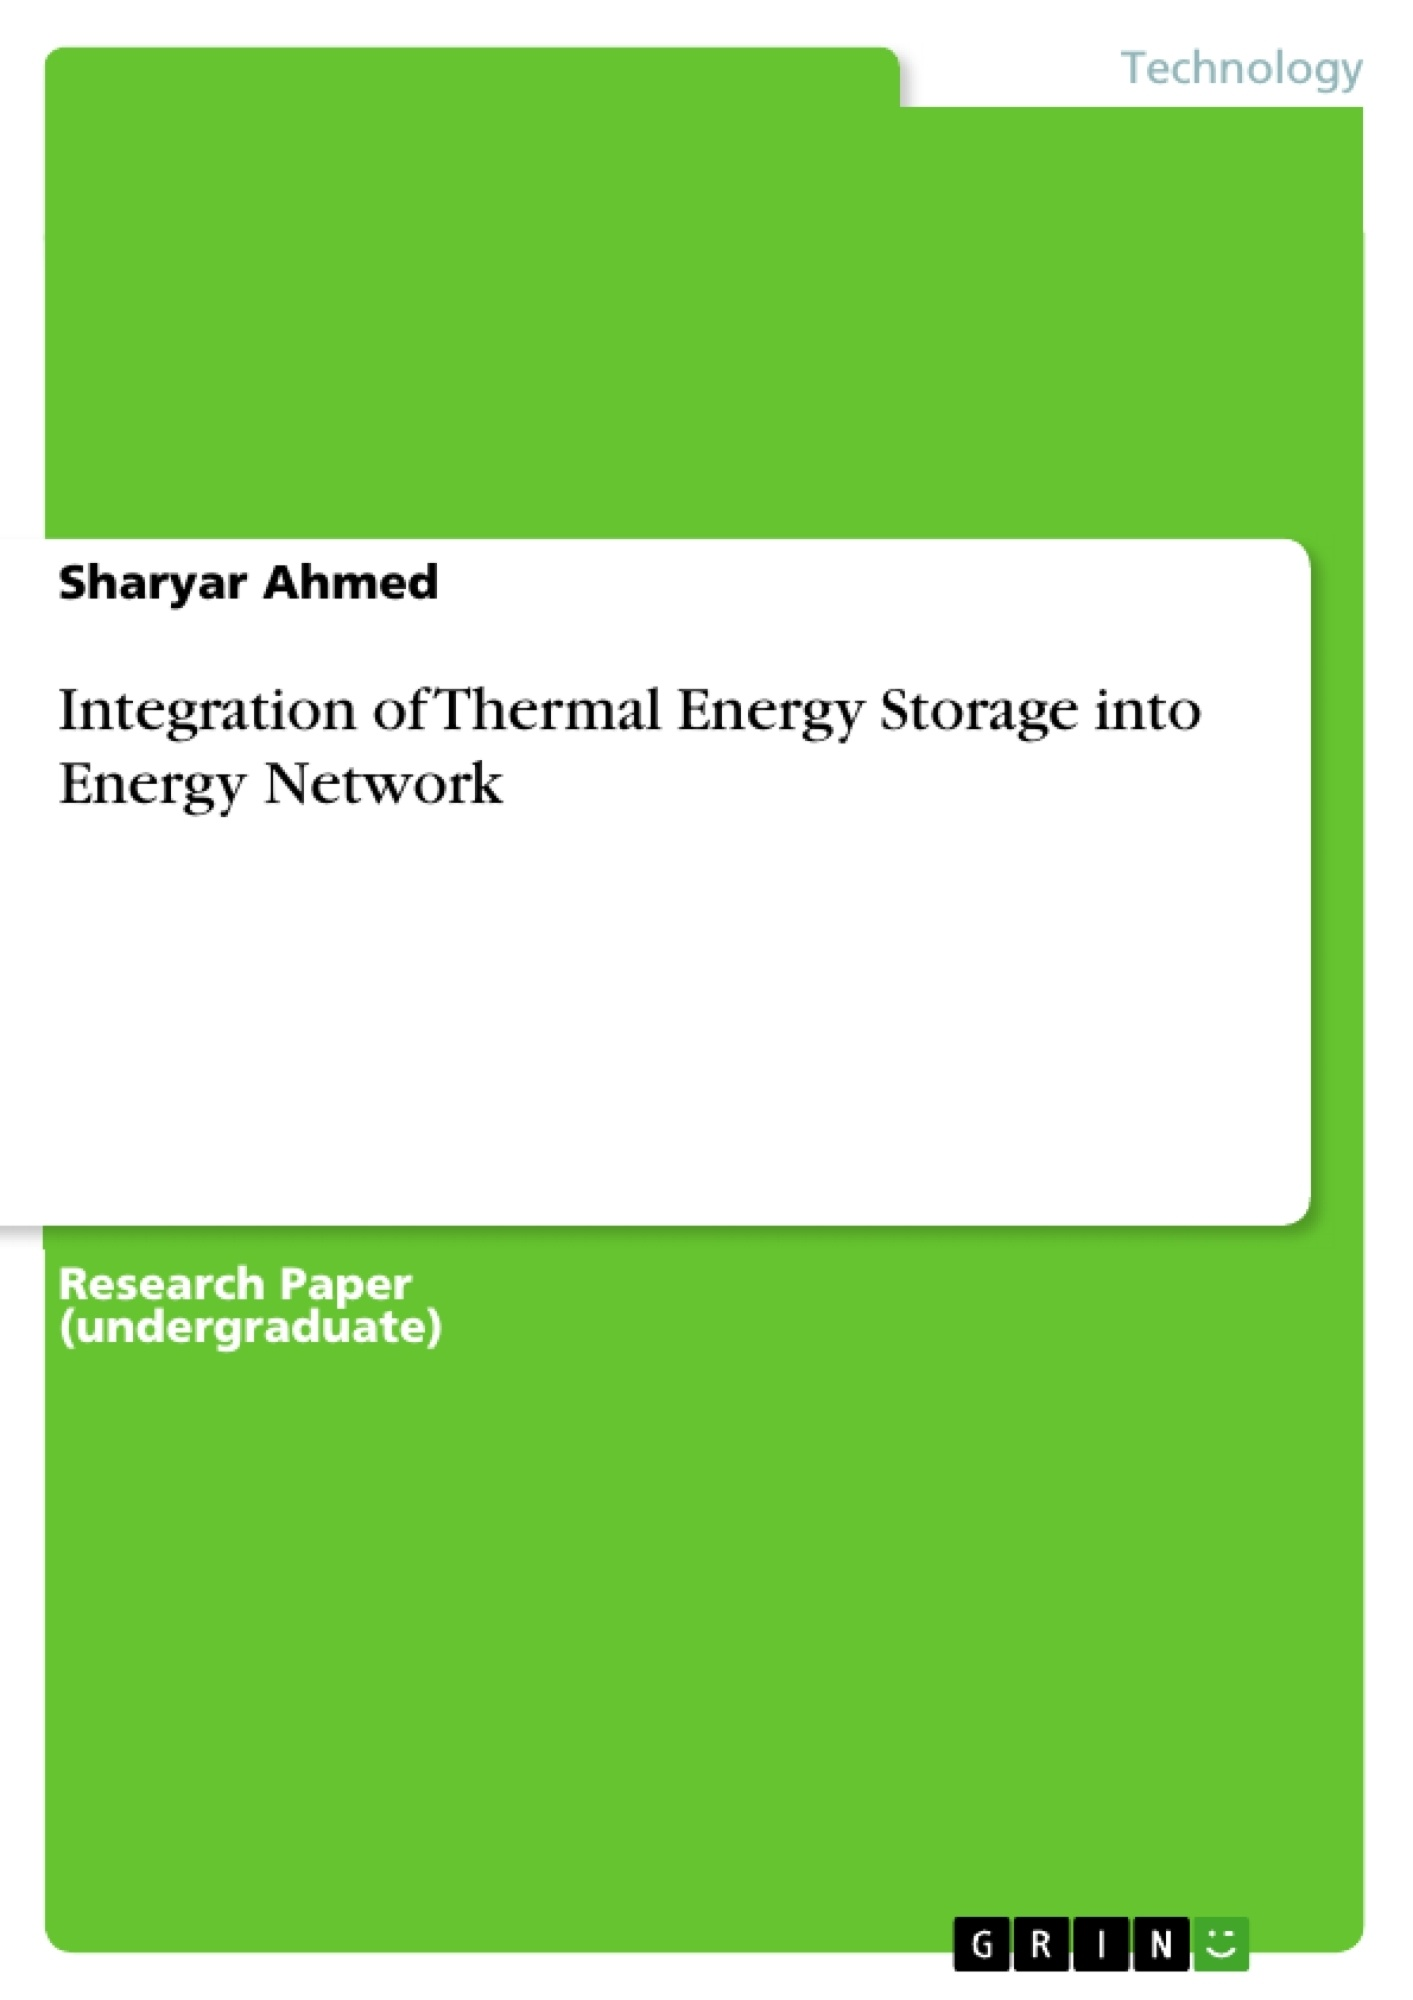 Title: Integration of Thermal Energy Storage into Energy Network